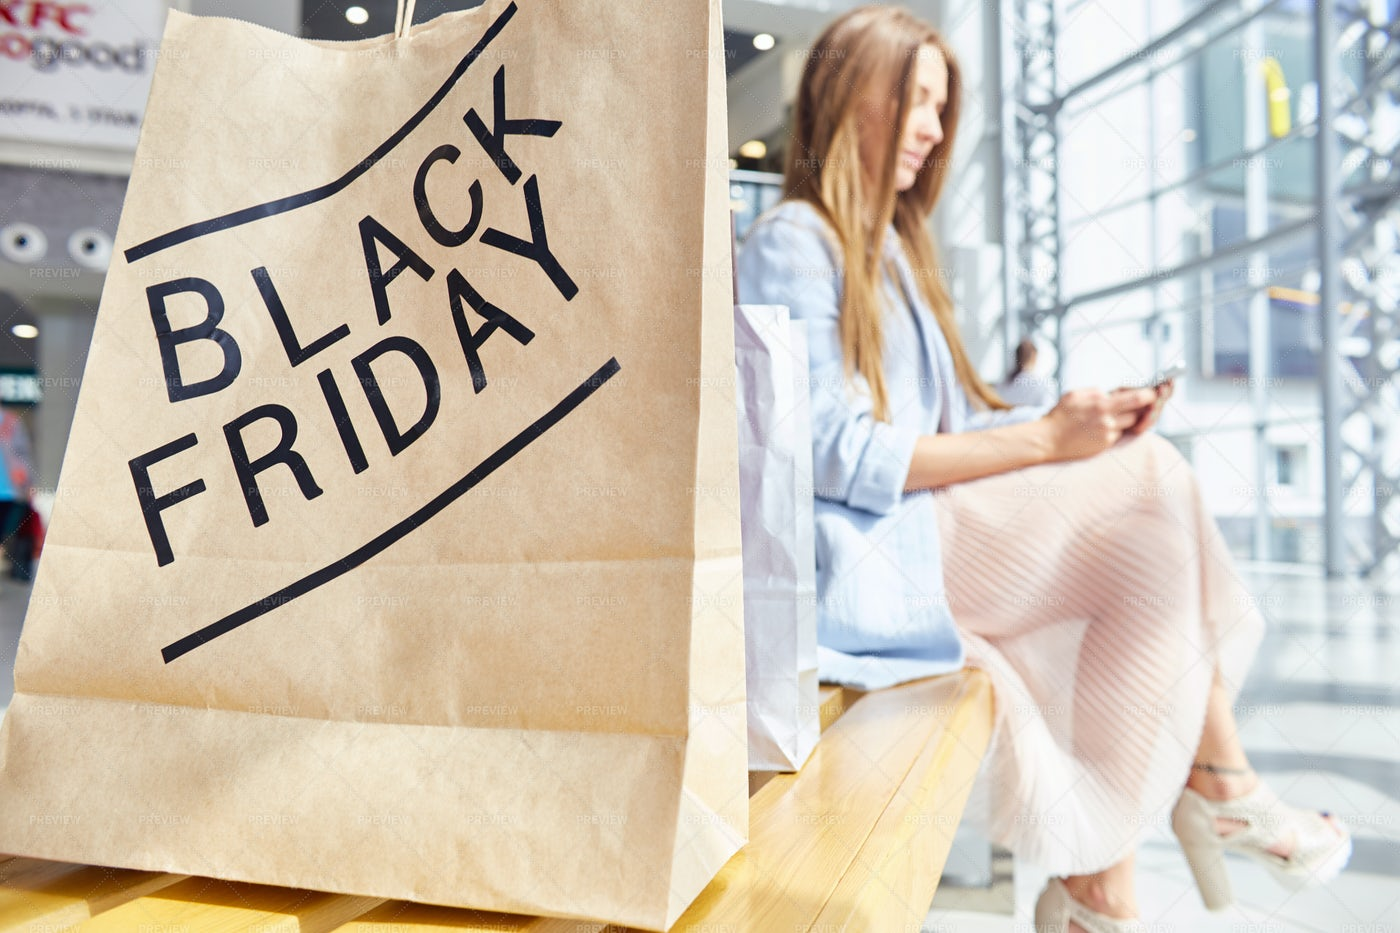 Young Woman Shopping On Black...: Stock Photos